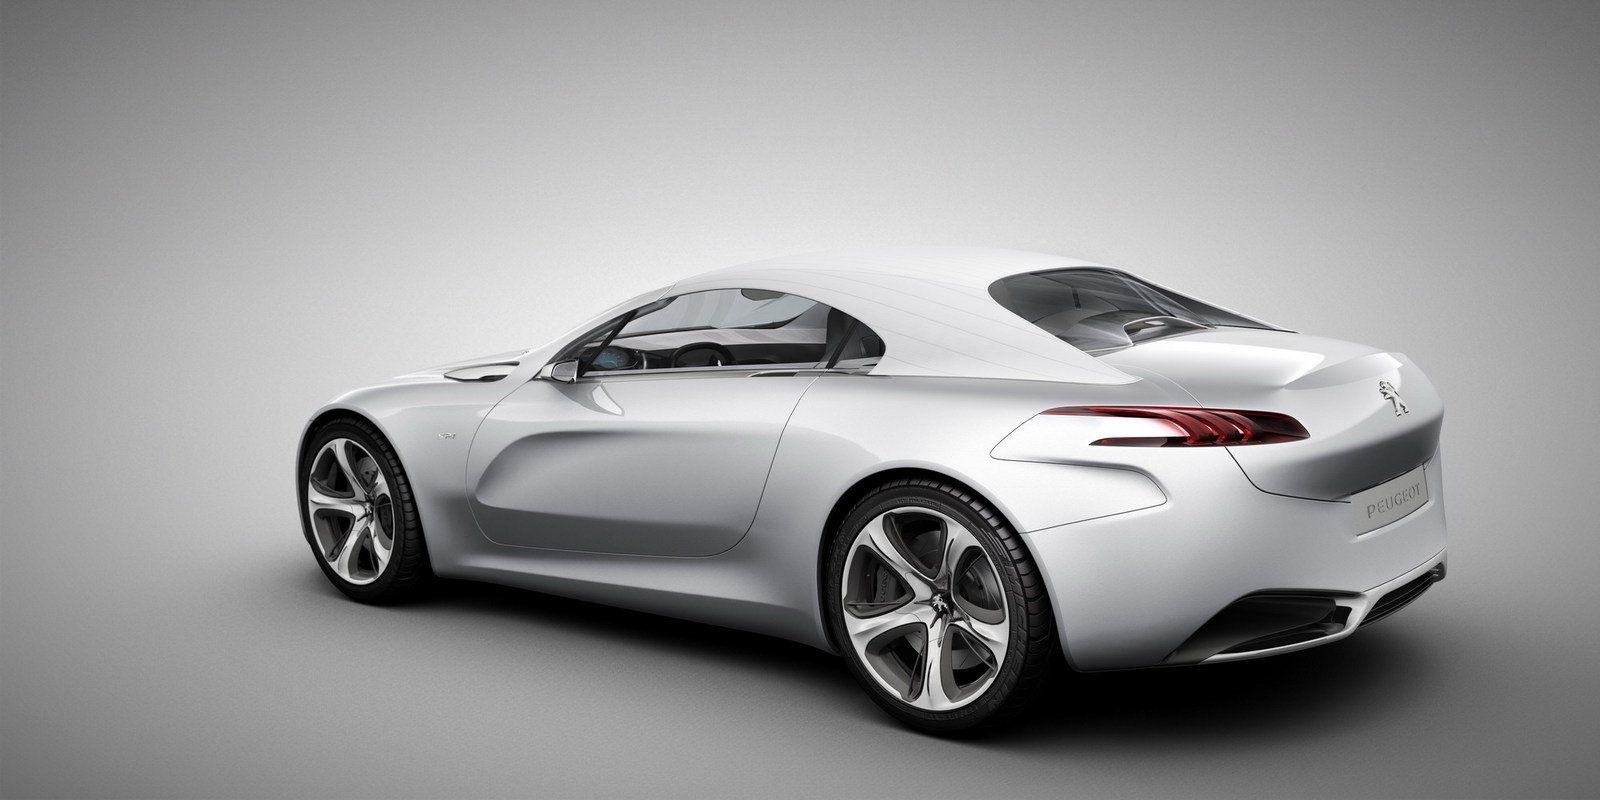 http://pictures.topspeed.com/IMG/crop/201001/2010-peugeot-sr1-concept-21_1600x0w.jpg